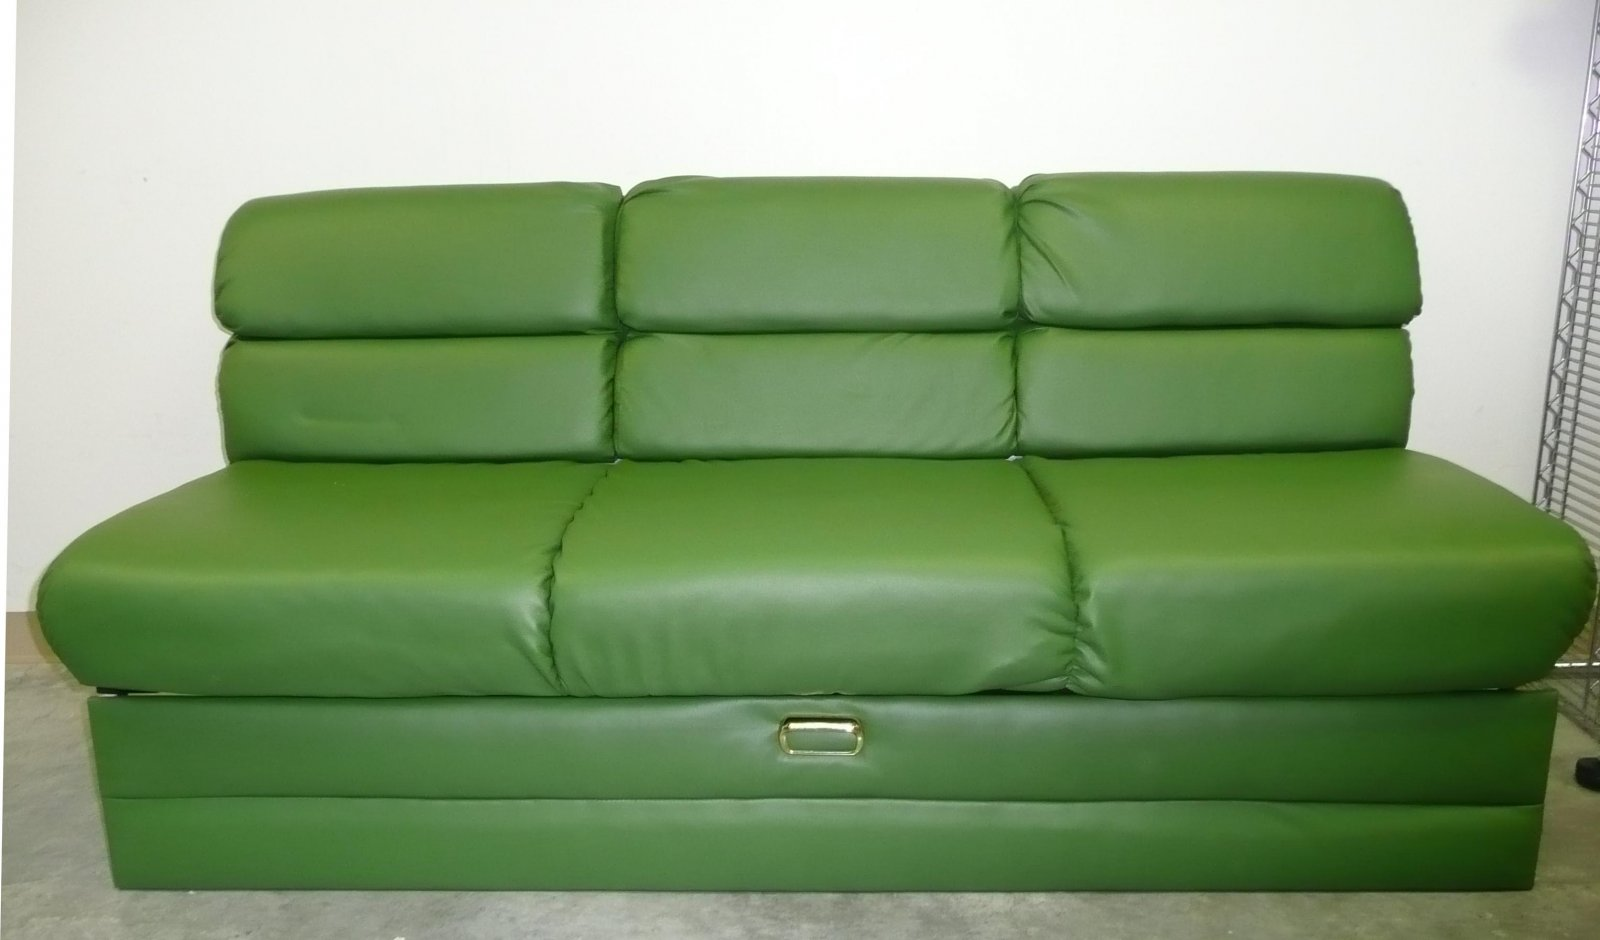 Click image for larger version  Name:Couch 1.jpg Views:139 Size:111.7 KB ID:144355